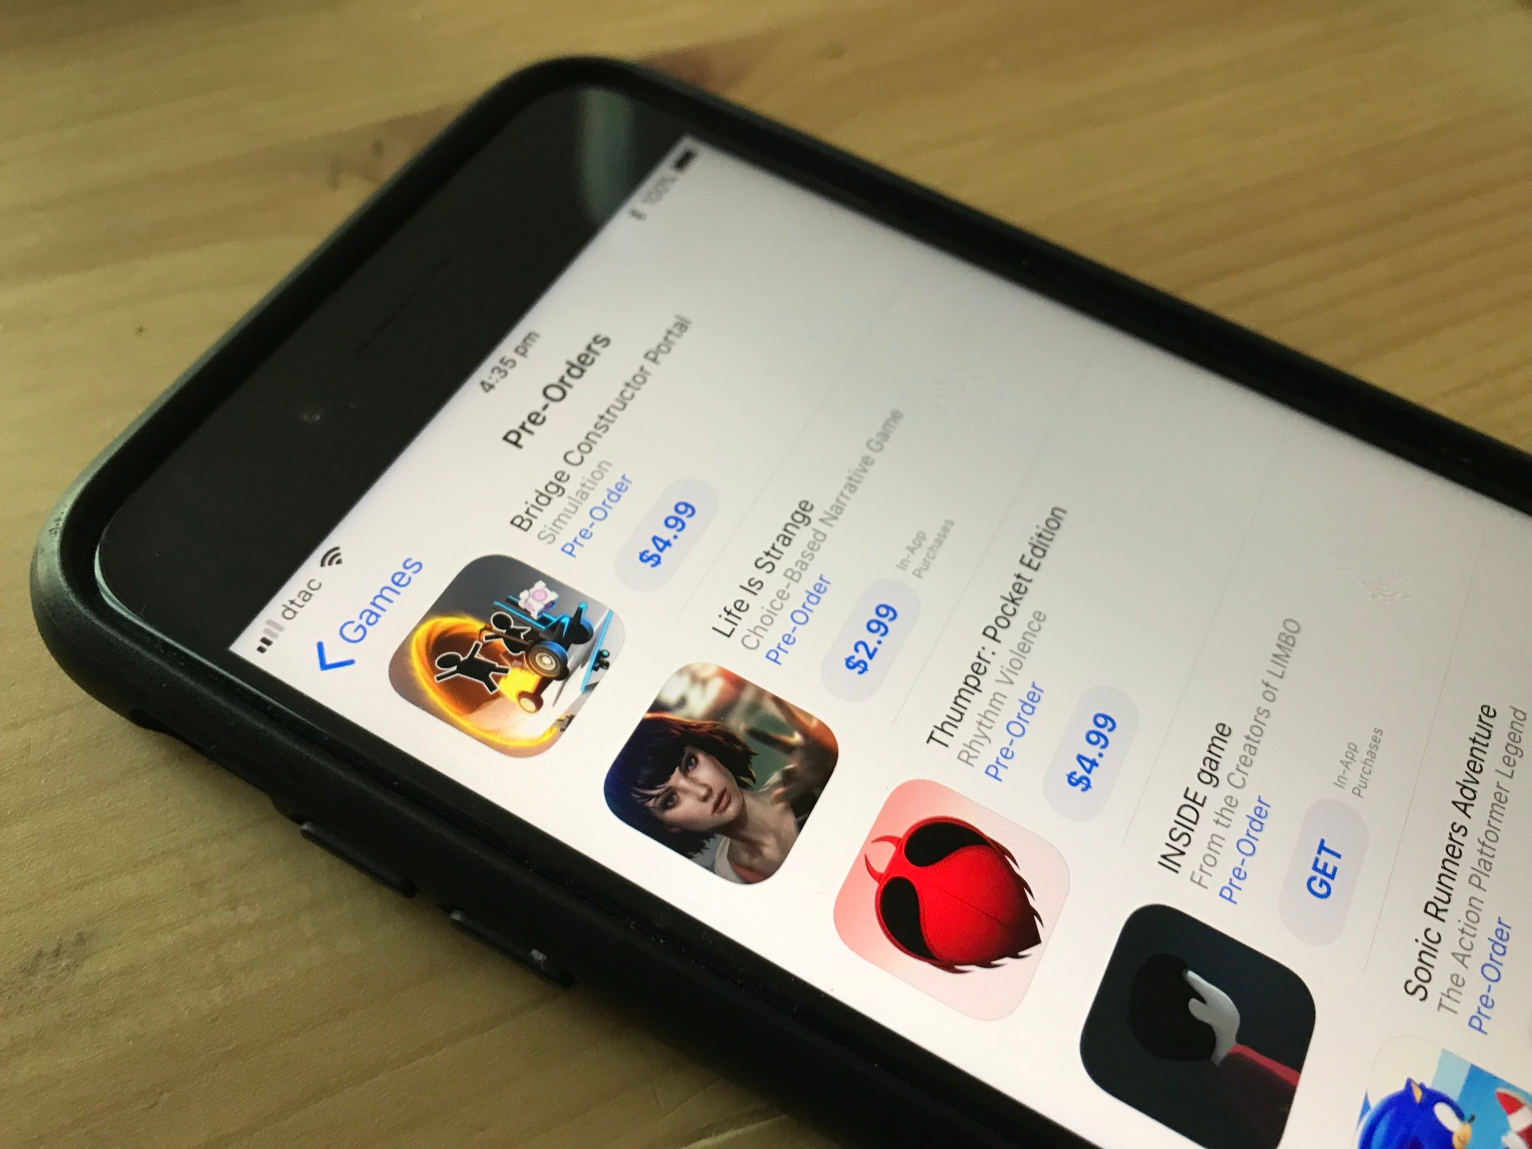 Apple's App Store now lets you pre-order iOS apps and games